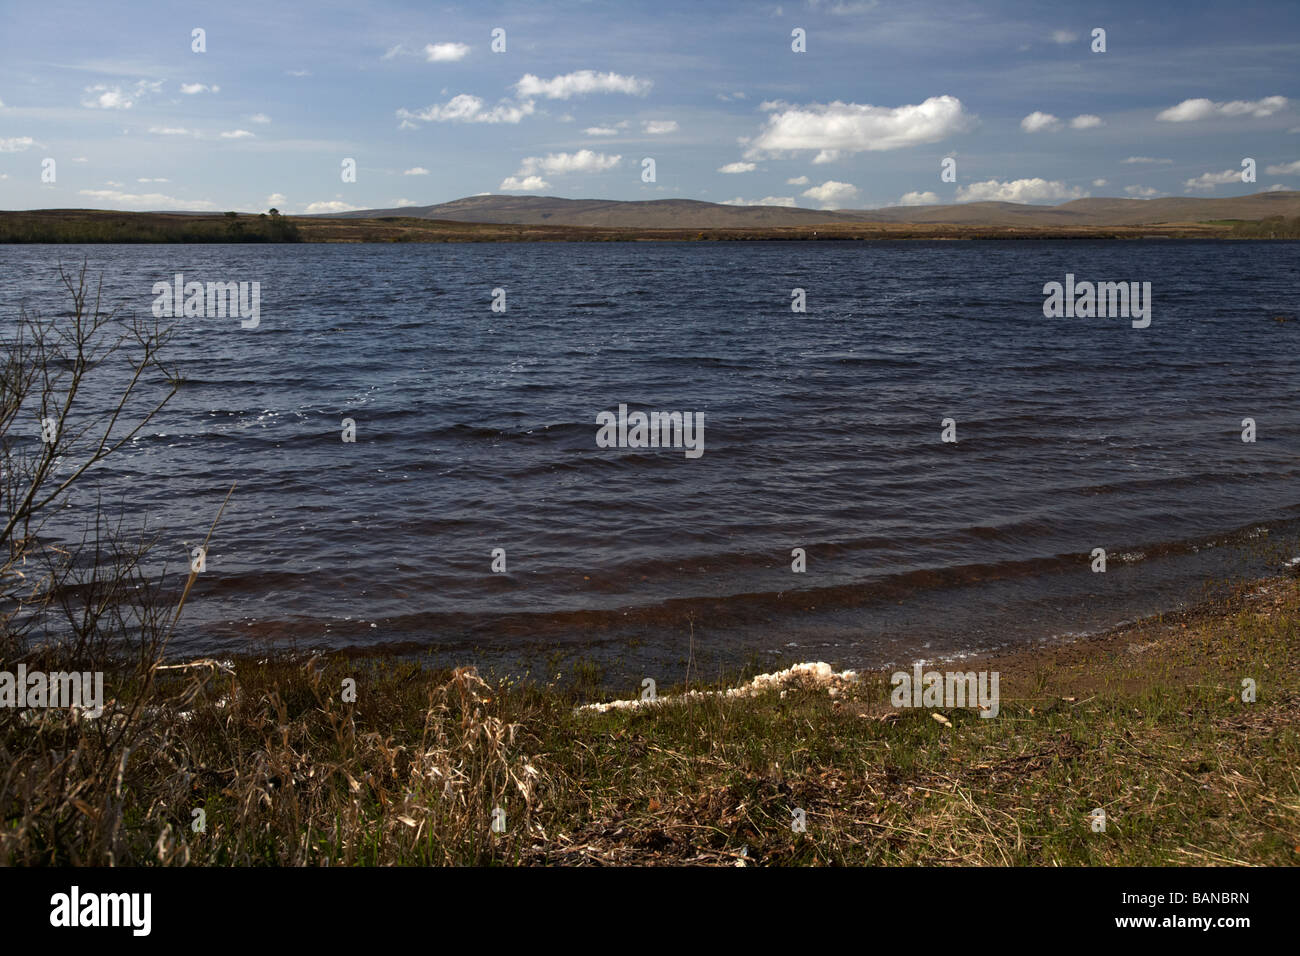 lough fea on the border of county tyrone and county derry londonderry in northern ireland Stock Photo